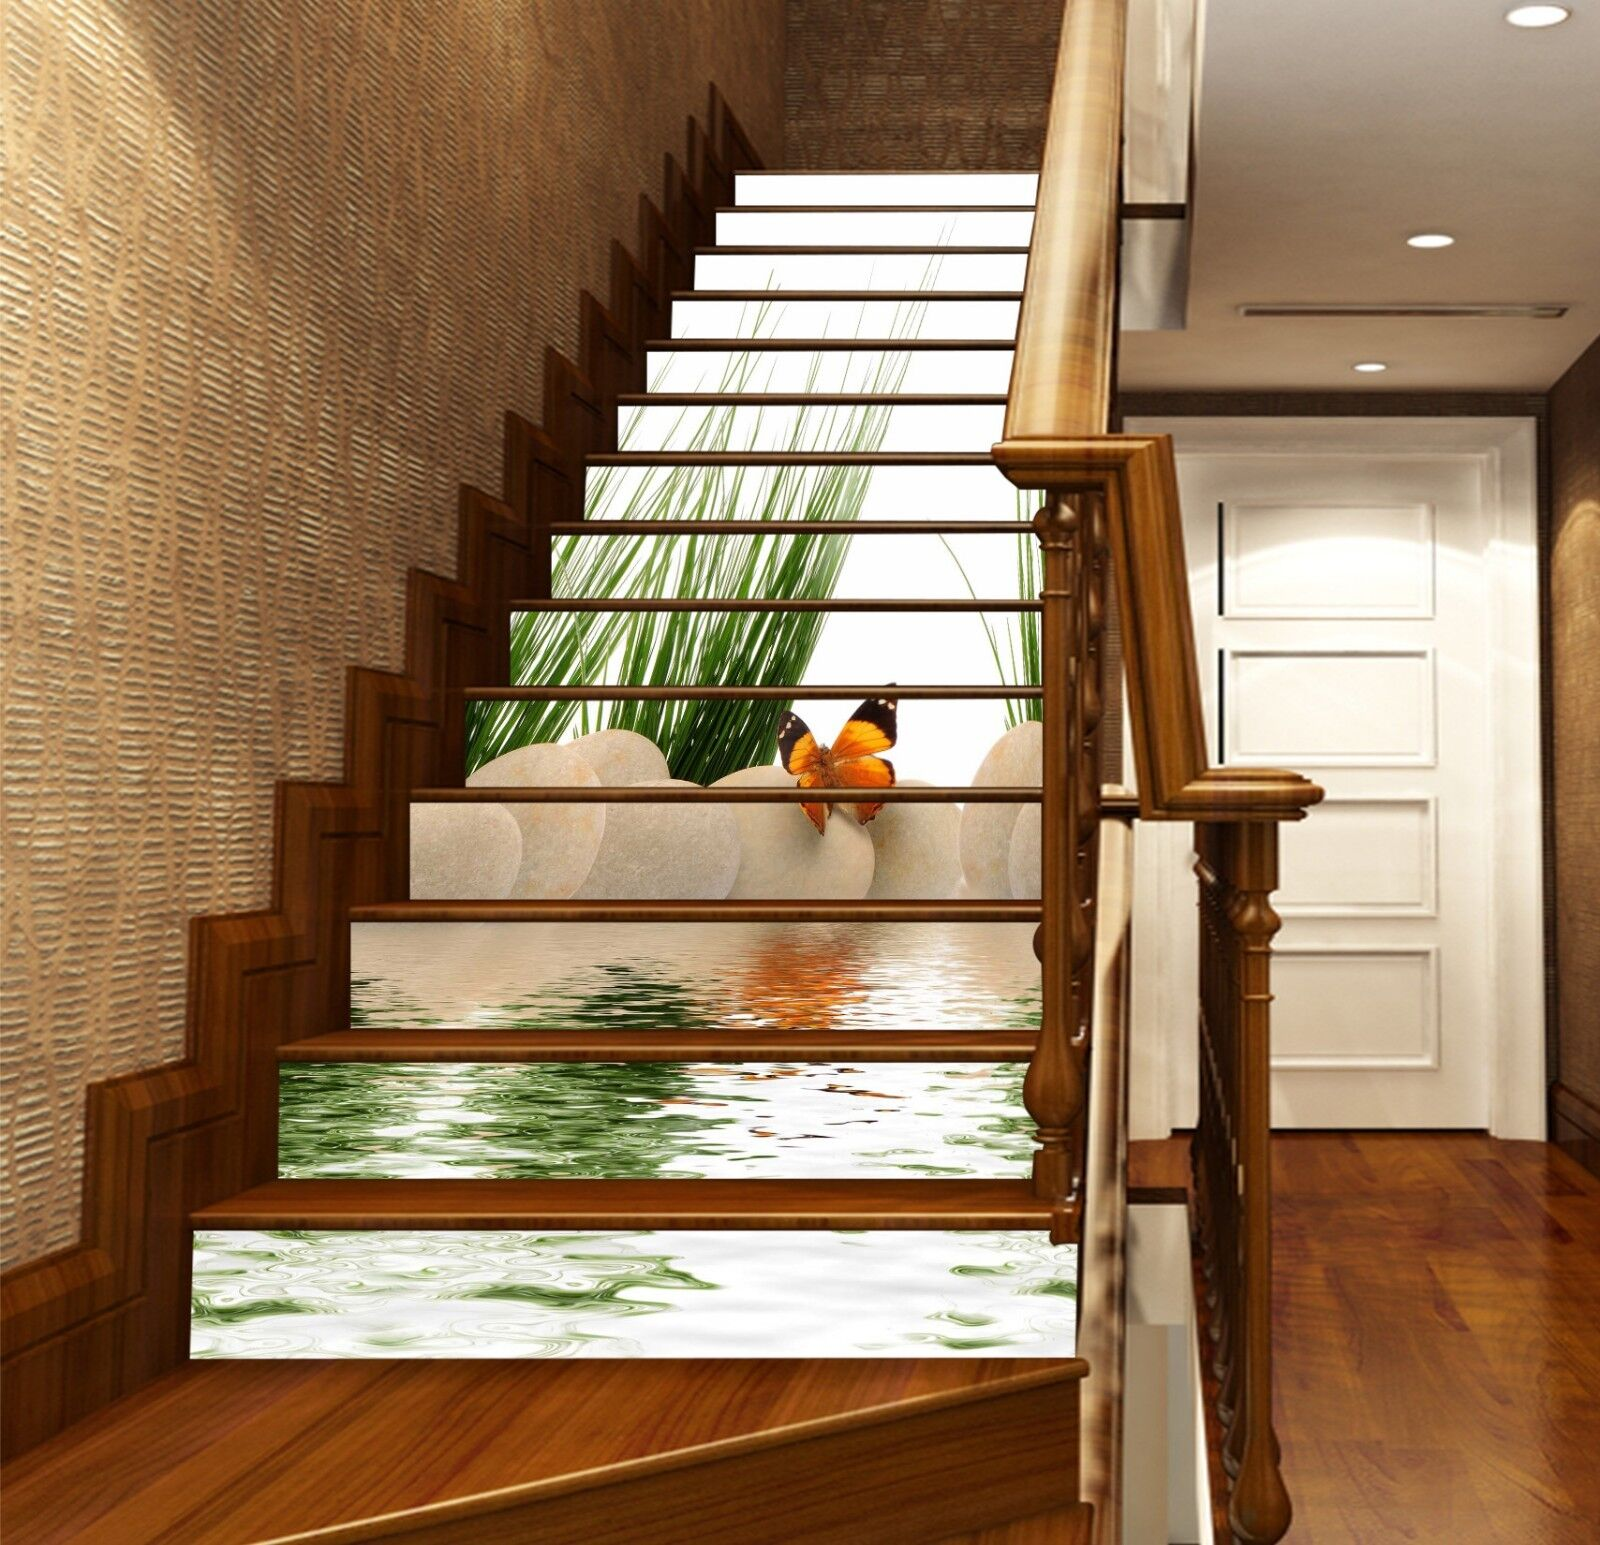 3D Butterfly River Stair Risers Decoration Photo Mural Vinyl Decal Wallpaper US